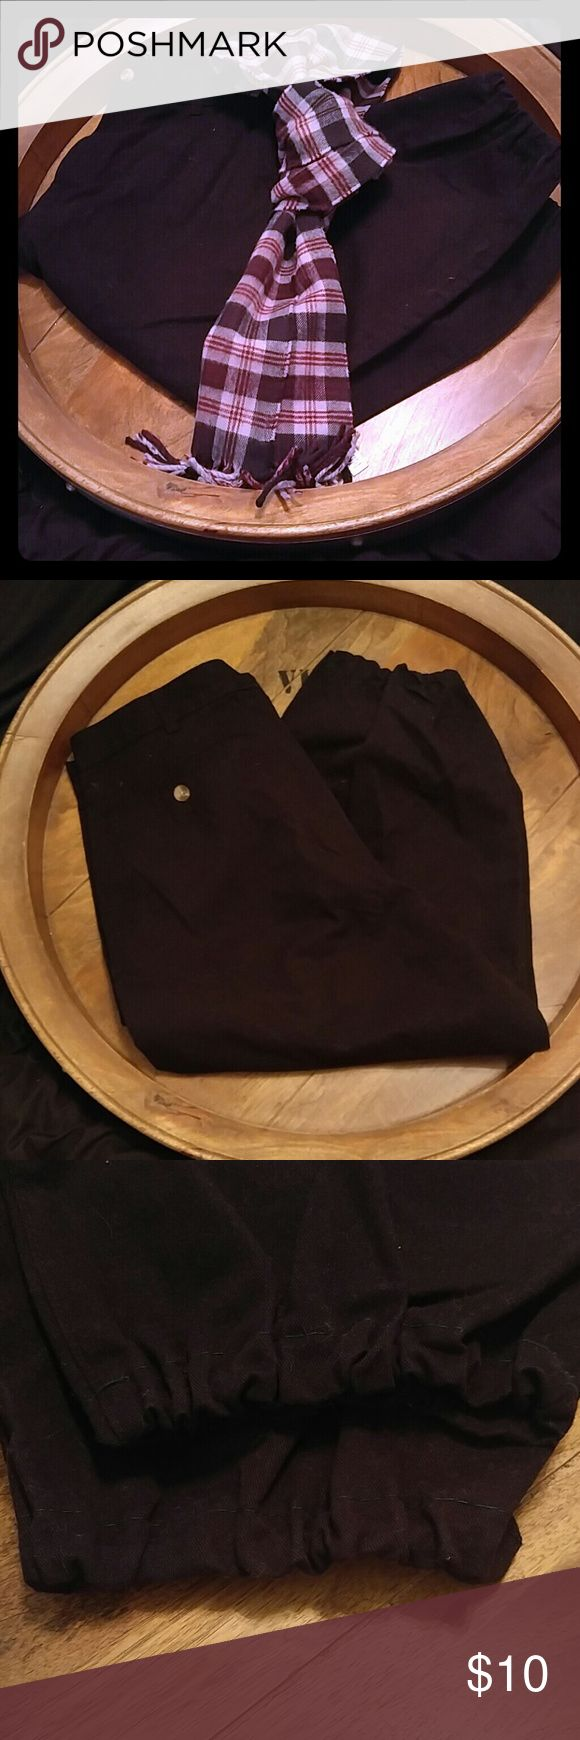 GEORGE GOLF KNICKERS/ PANTS GEORGE GOLF KNICKERS/ PANTS. Great for GOLF outings! In great condition. Size 36WX29L George Pants Sweatpants & Joggers